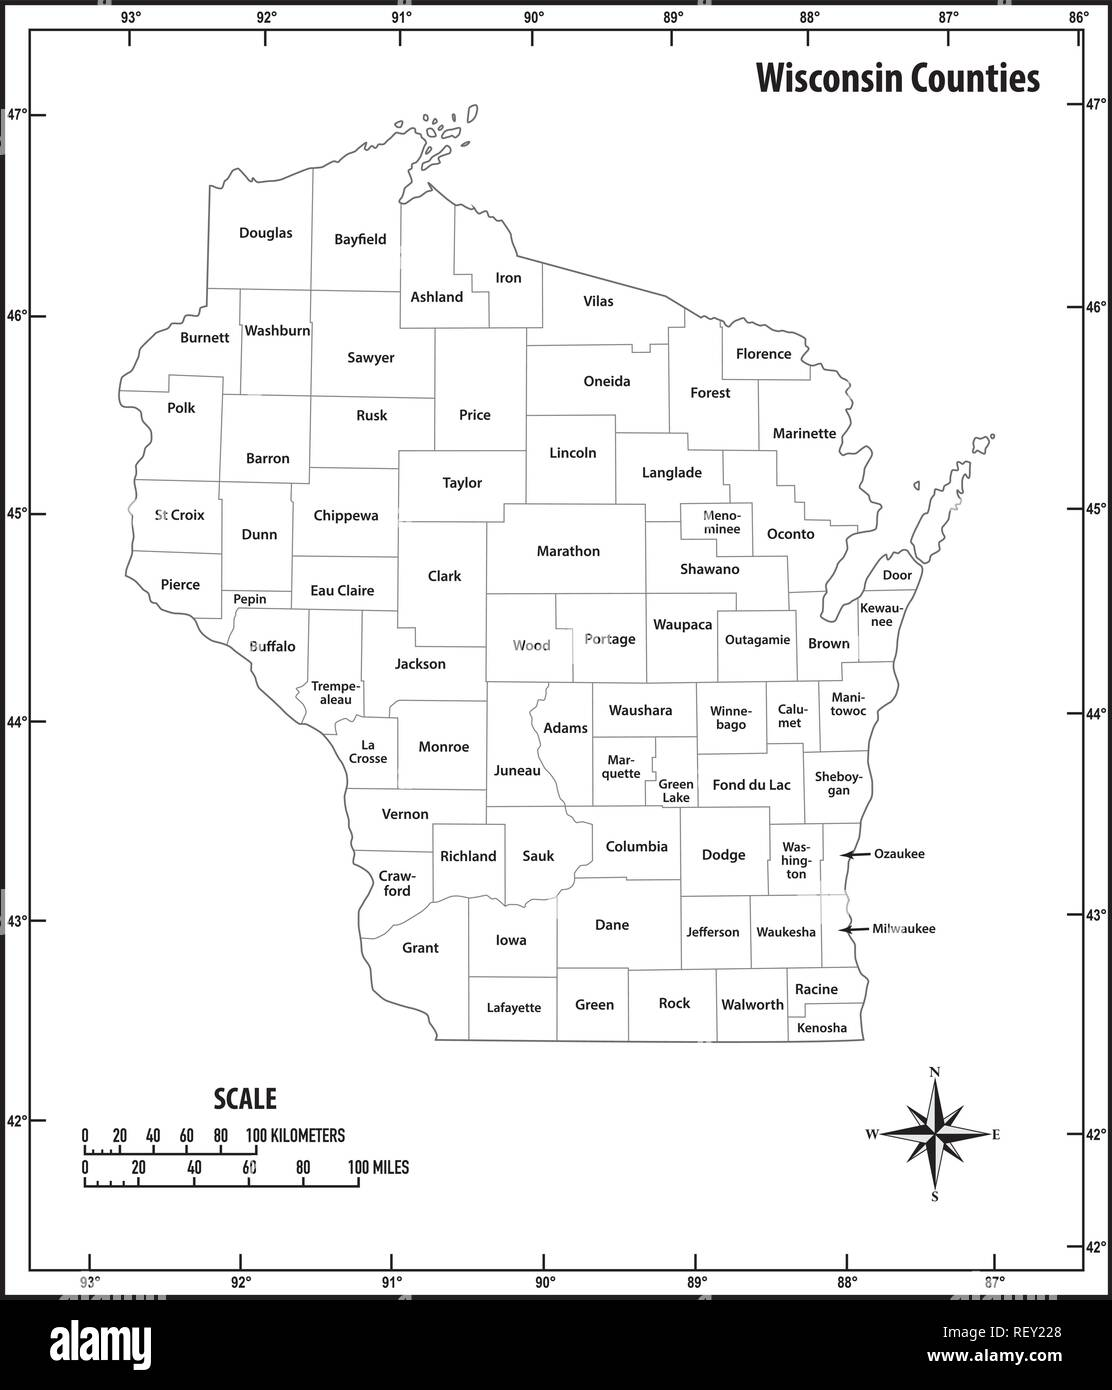 wisconsin state outline administrative and political vector map in black and white - Stock Image